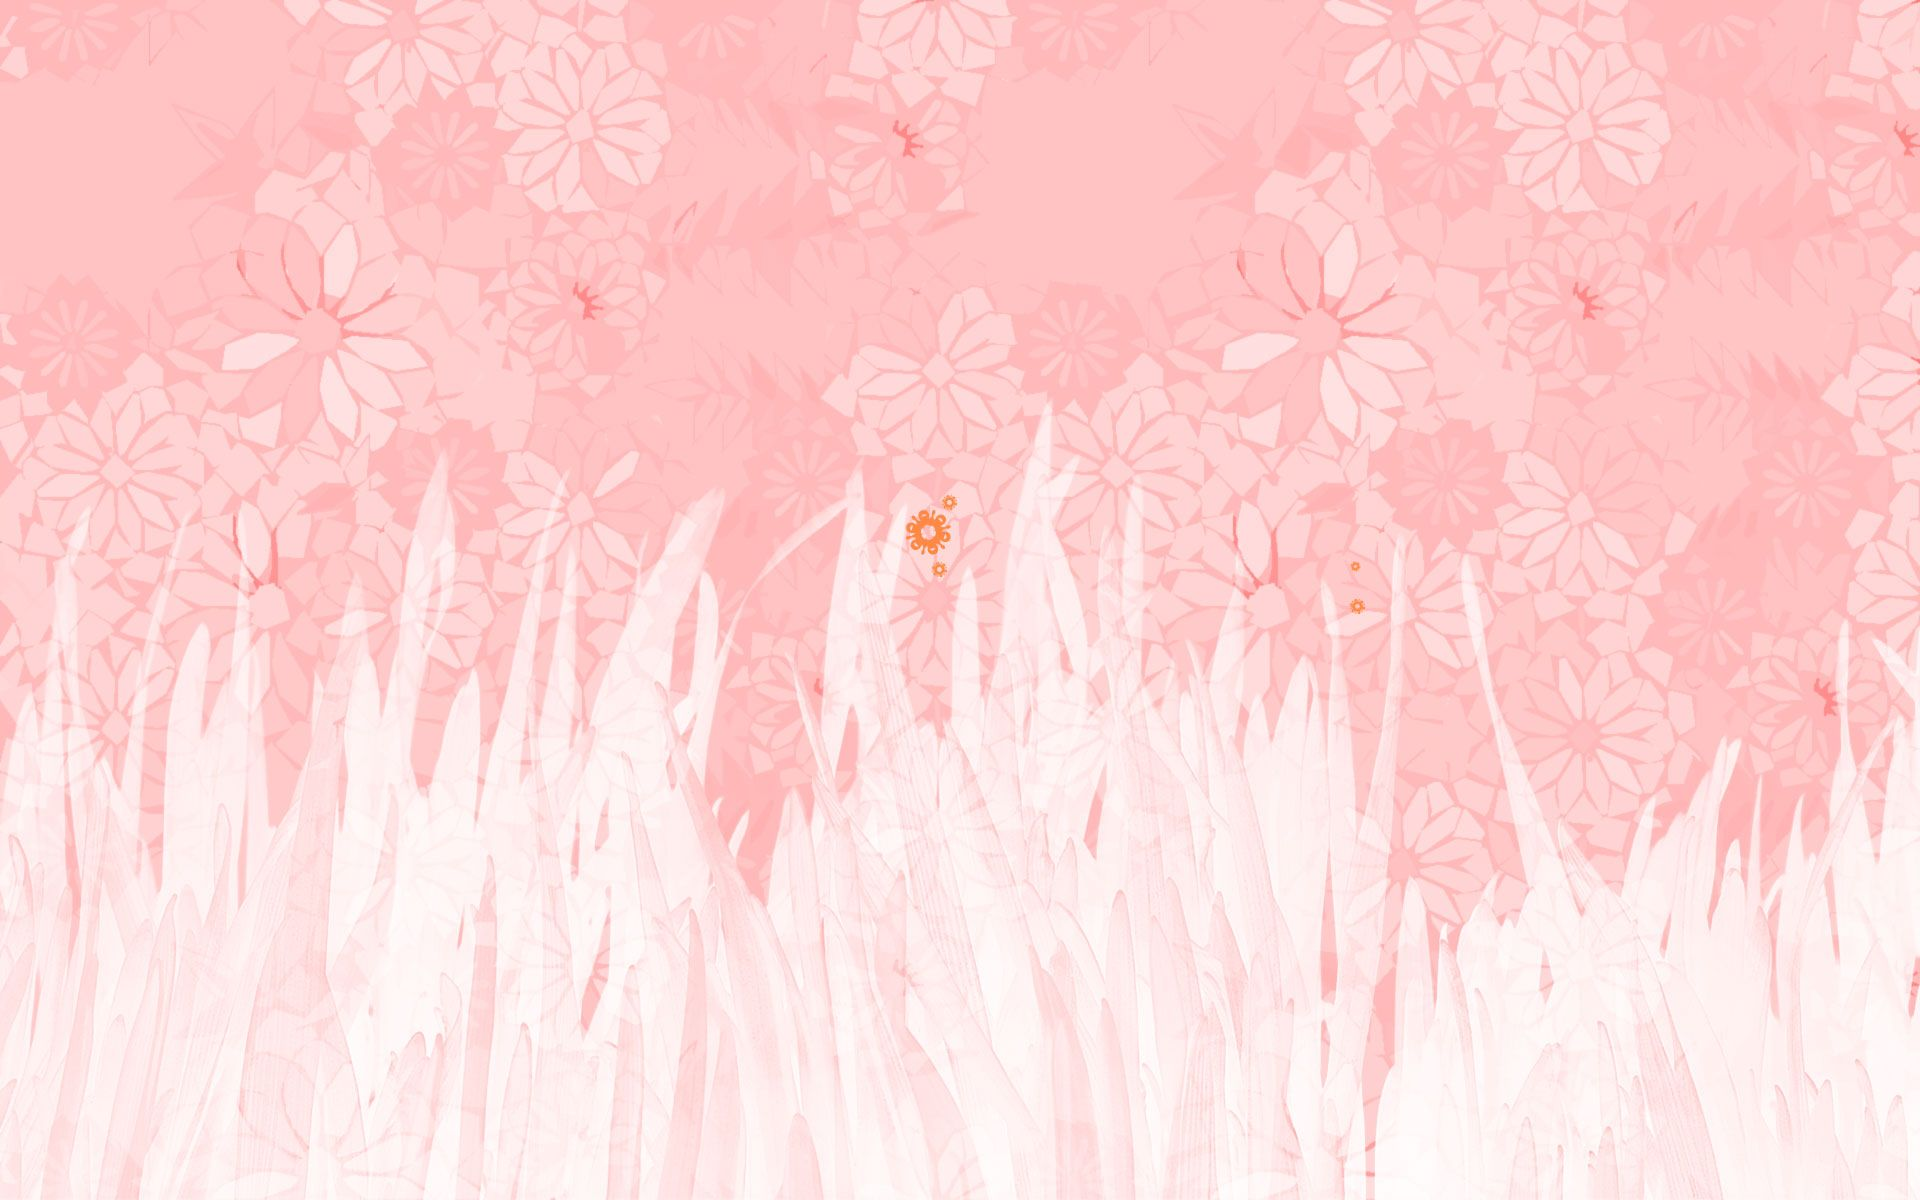 Pastel Pink Wallpaper Hd Pink Wallpaper Pc Pastel Pink Wallpaper Pink Wallpaper